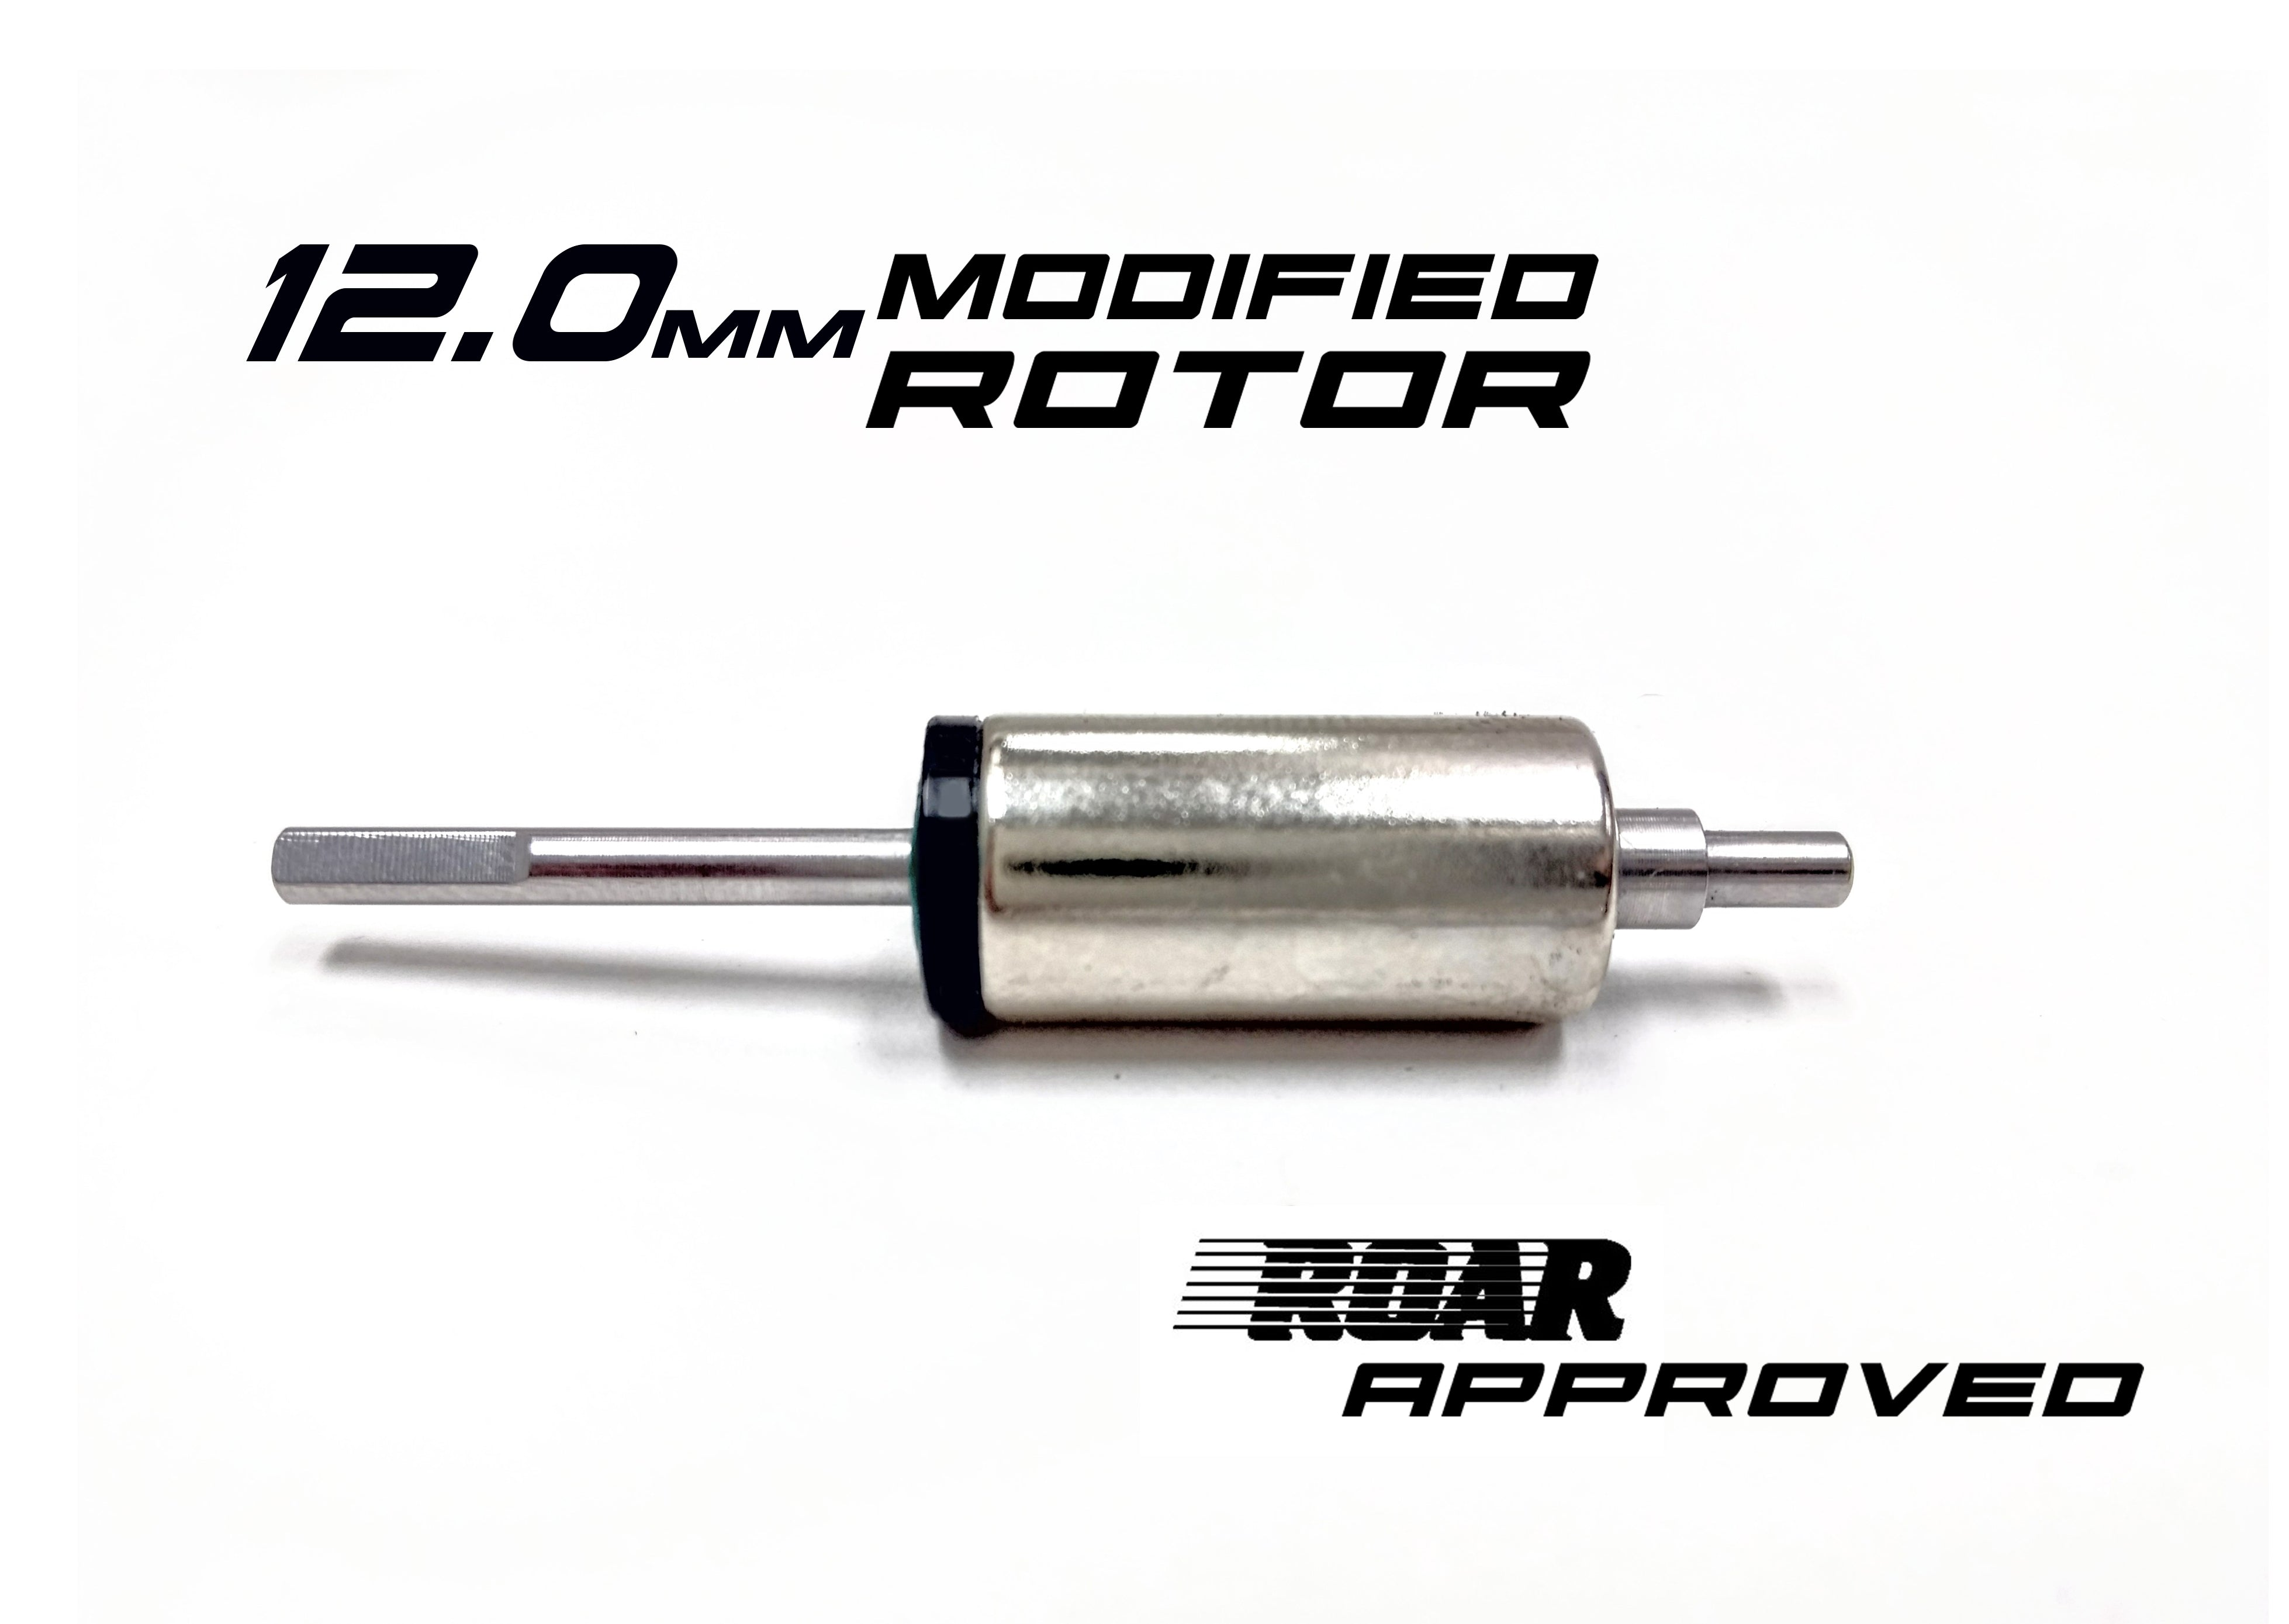 R1 V16 12.0mm Modified Rotor 020055 C3 - R1 Brushless Motor Lab, LLC.